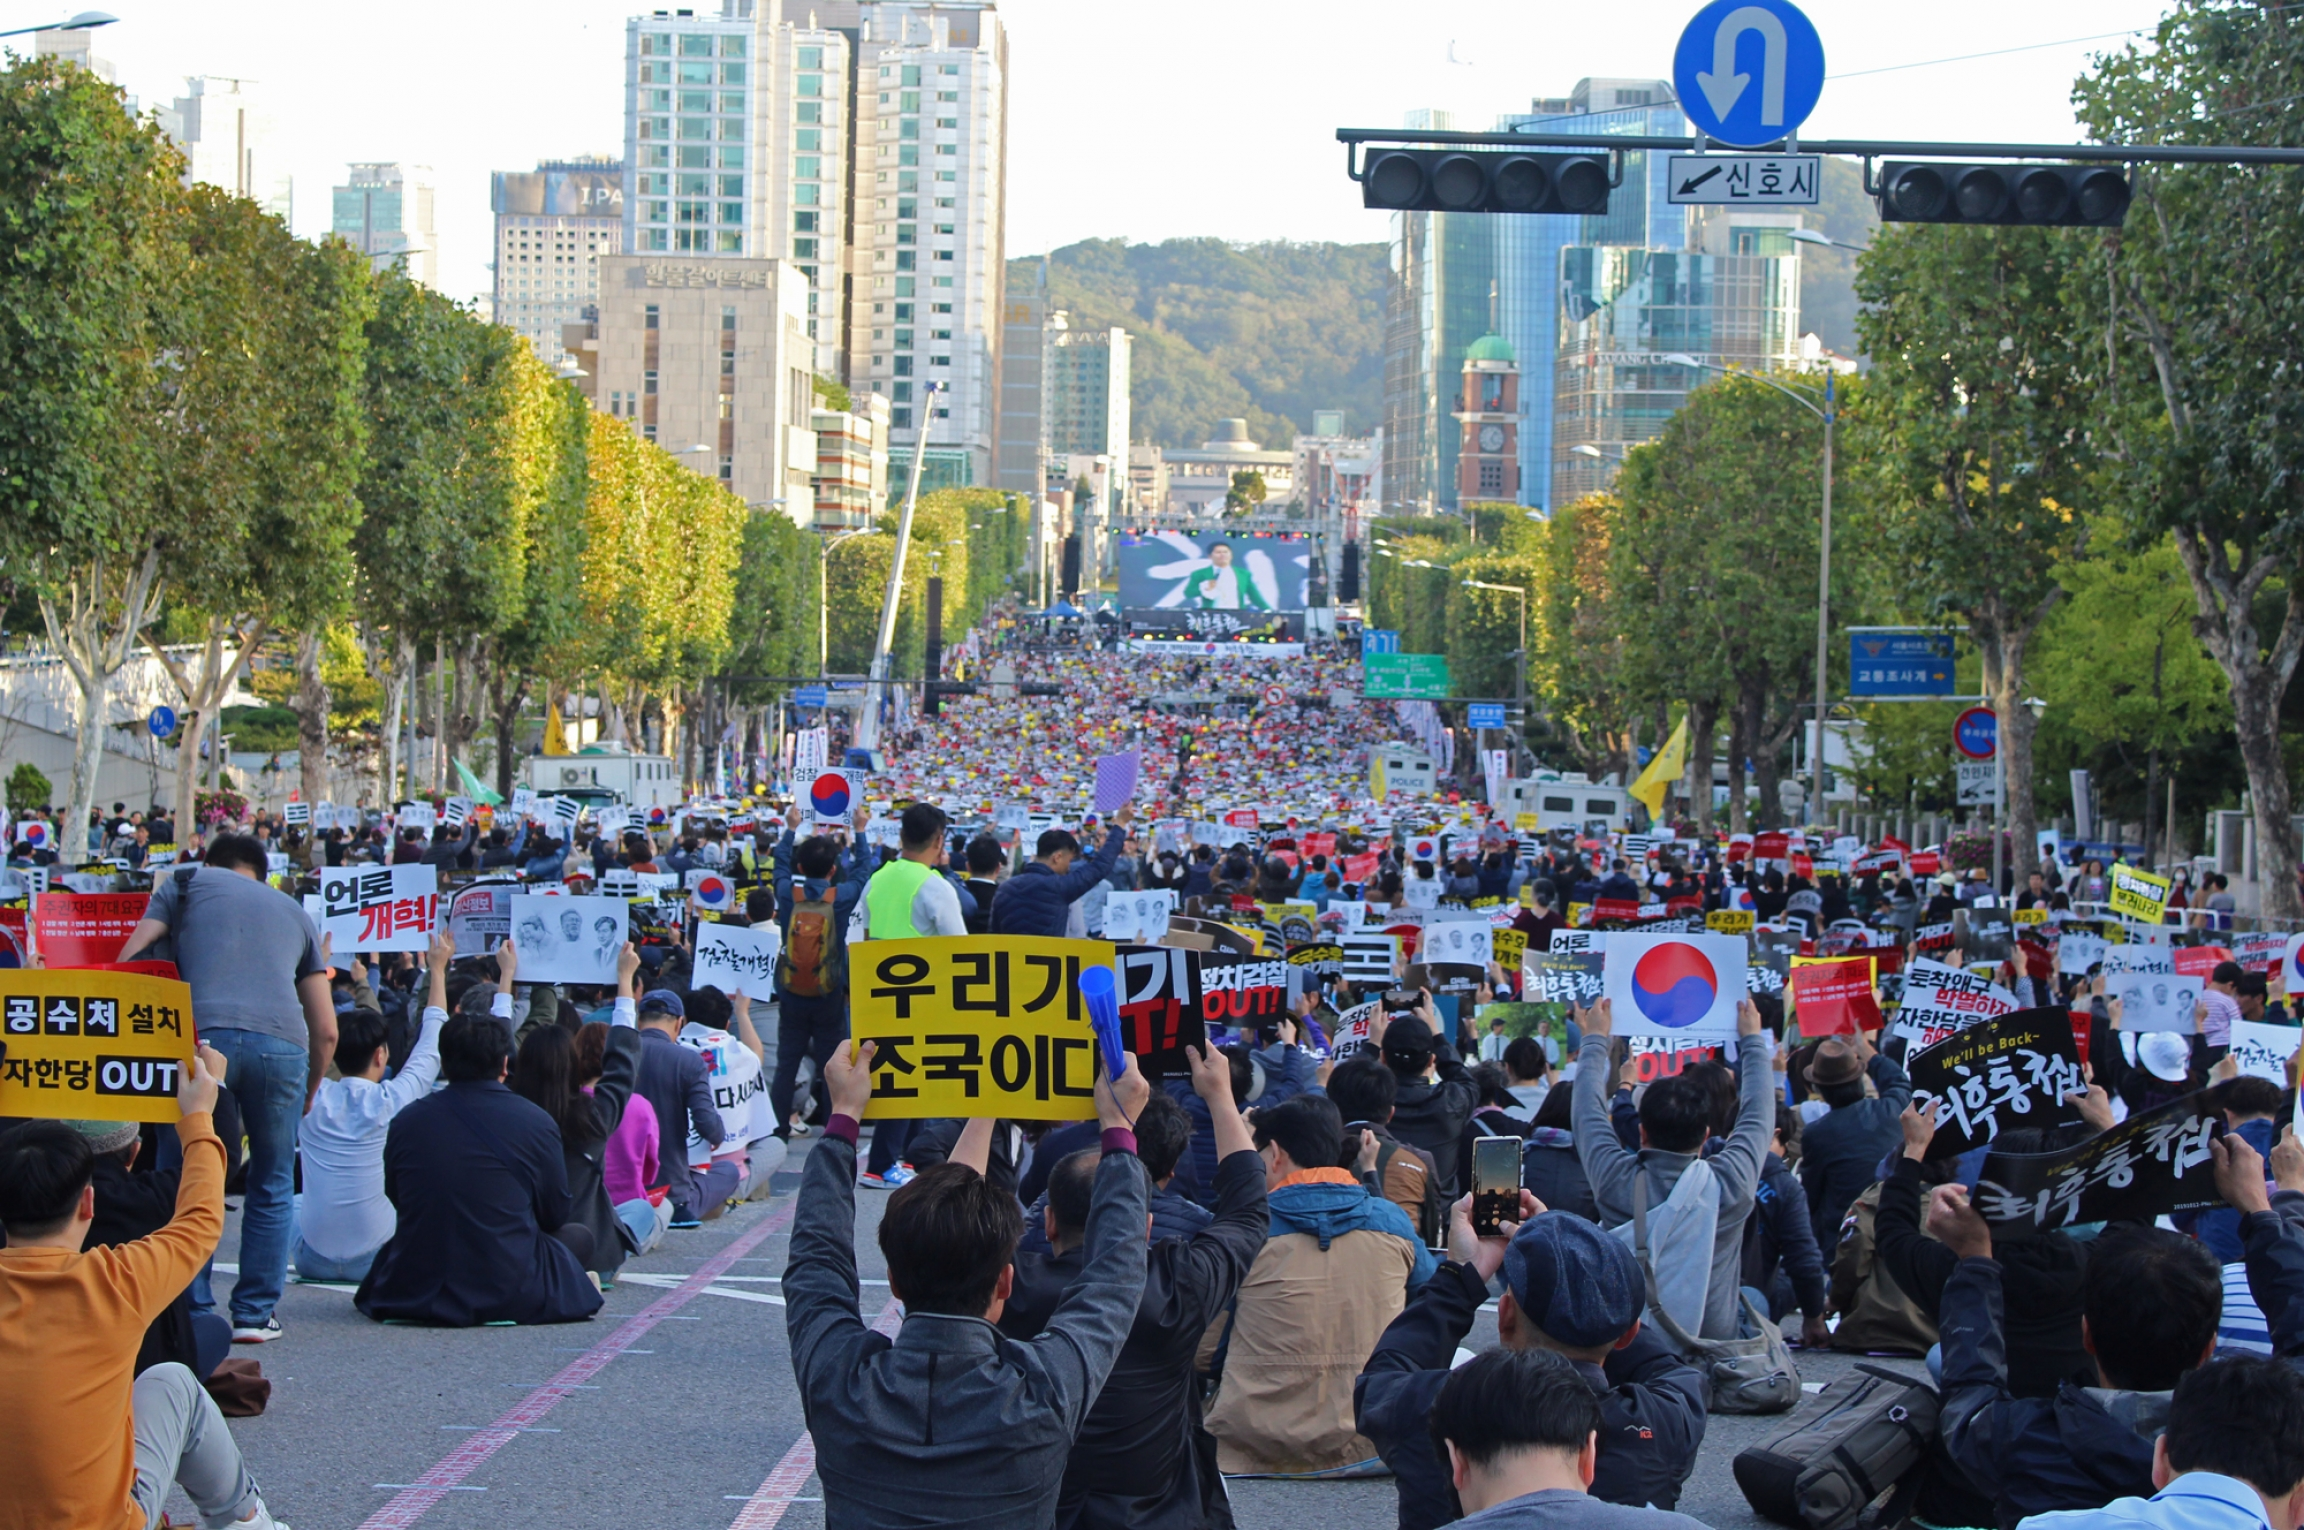 A mass protest in South Korea